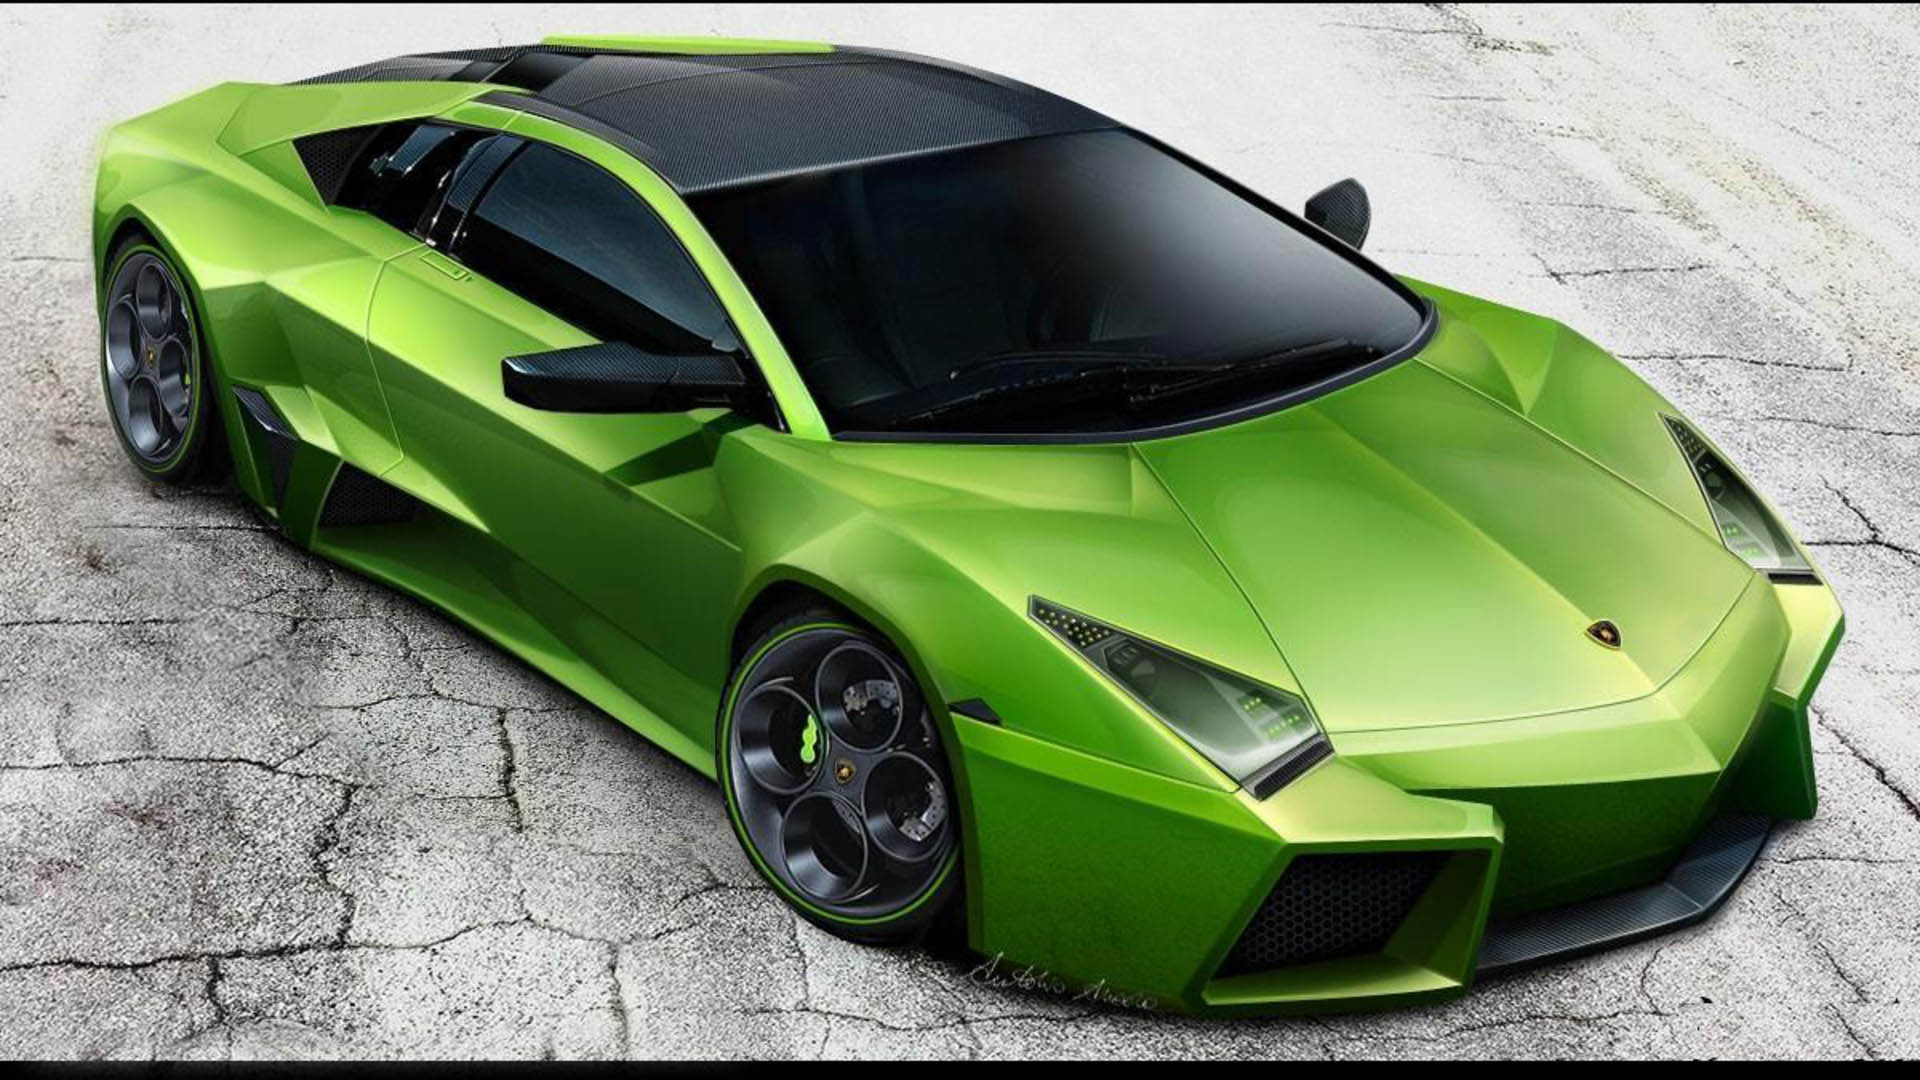 22 Hottest Wallpaper Collection of LamborghiniOriginal